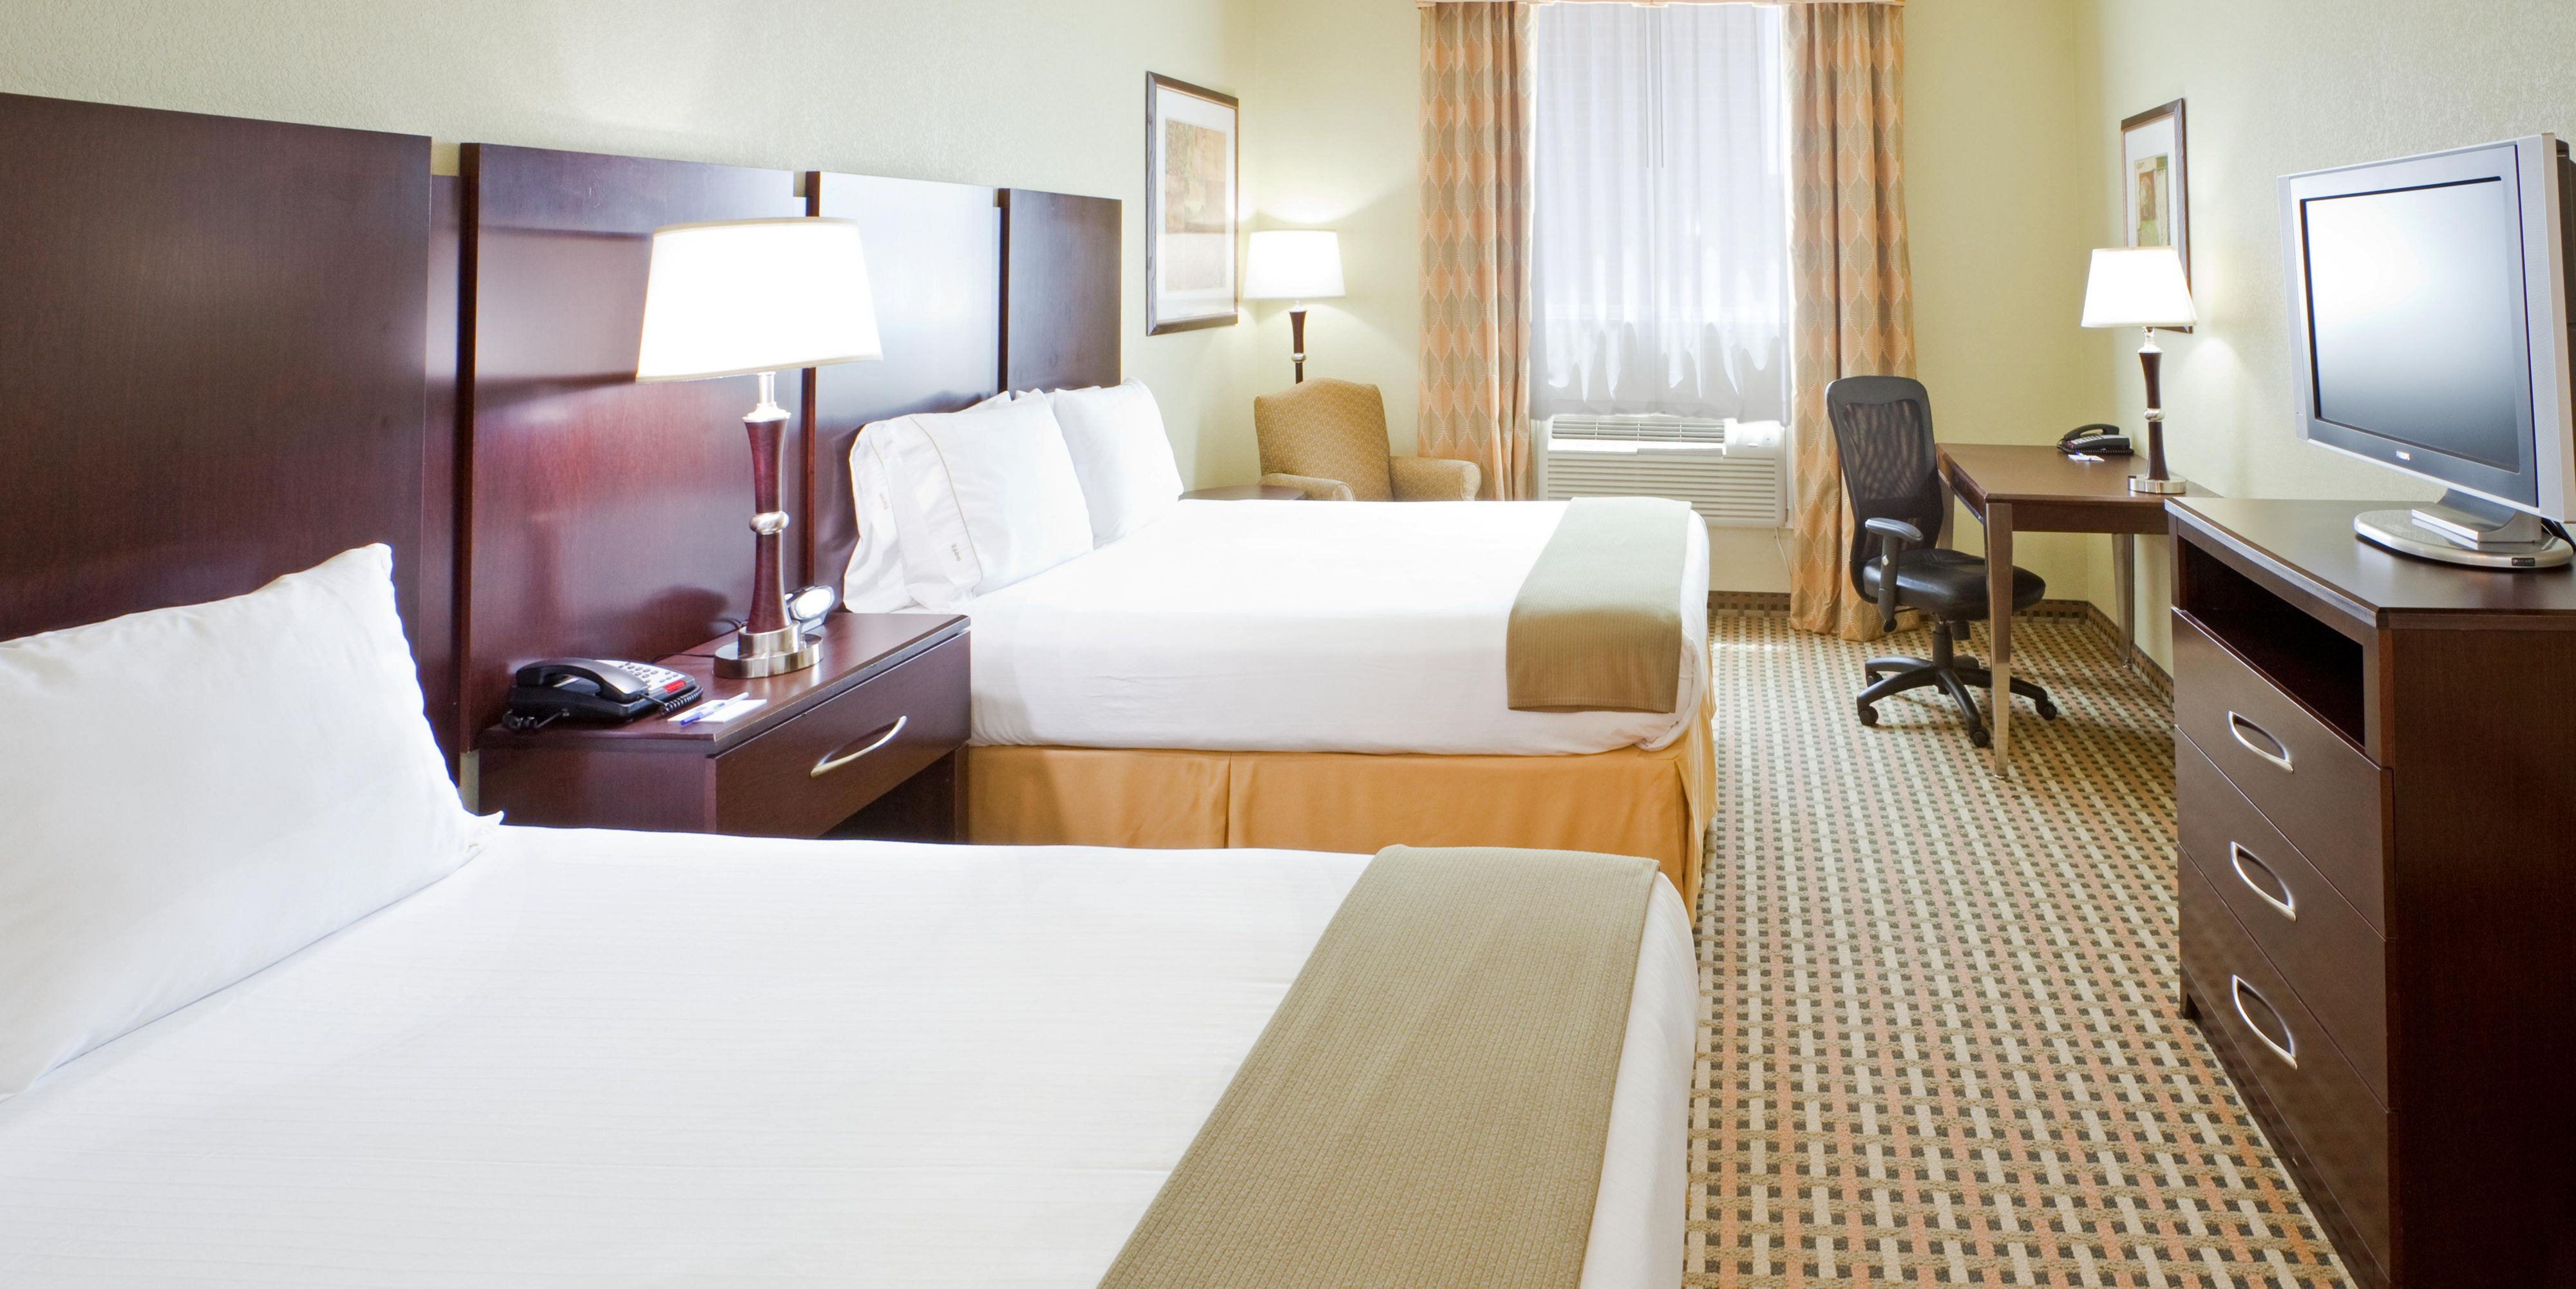 holiday inn express & suites fort worth i-35 western center hotel